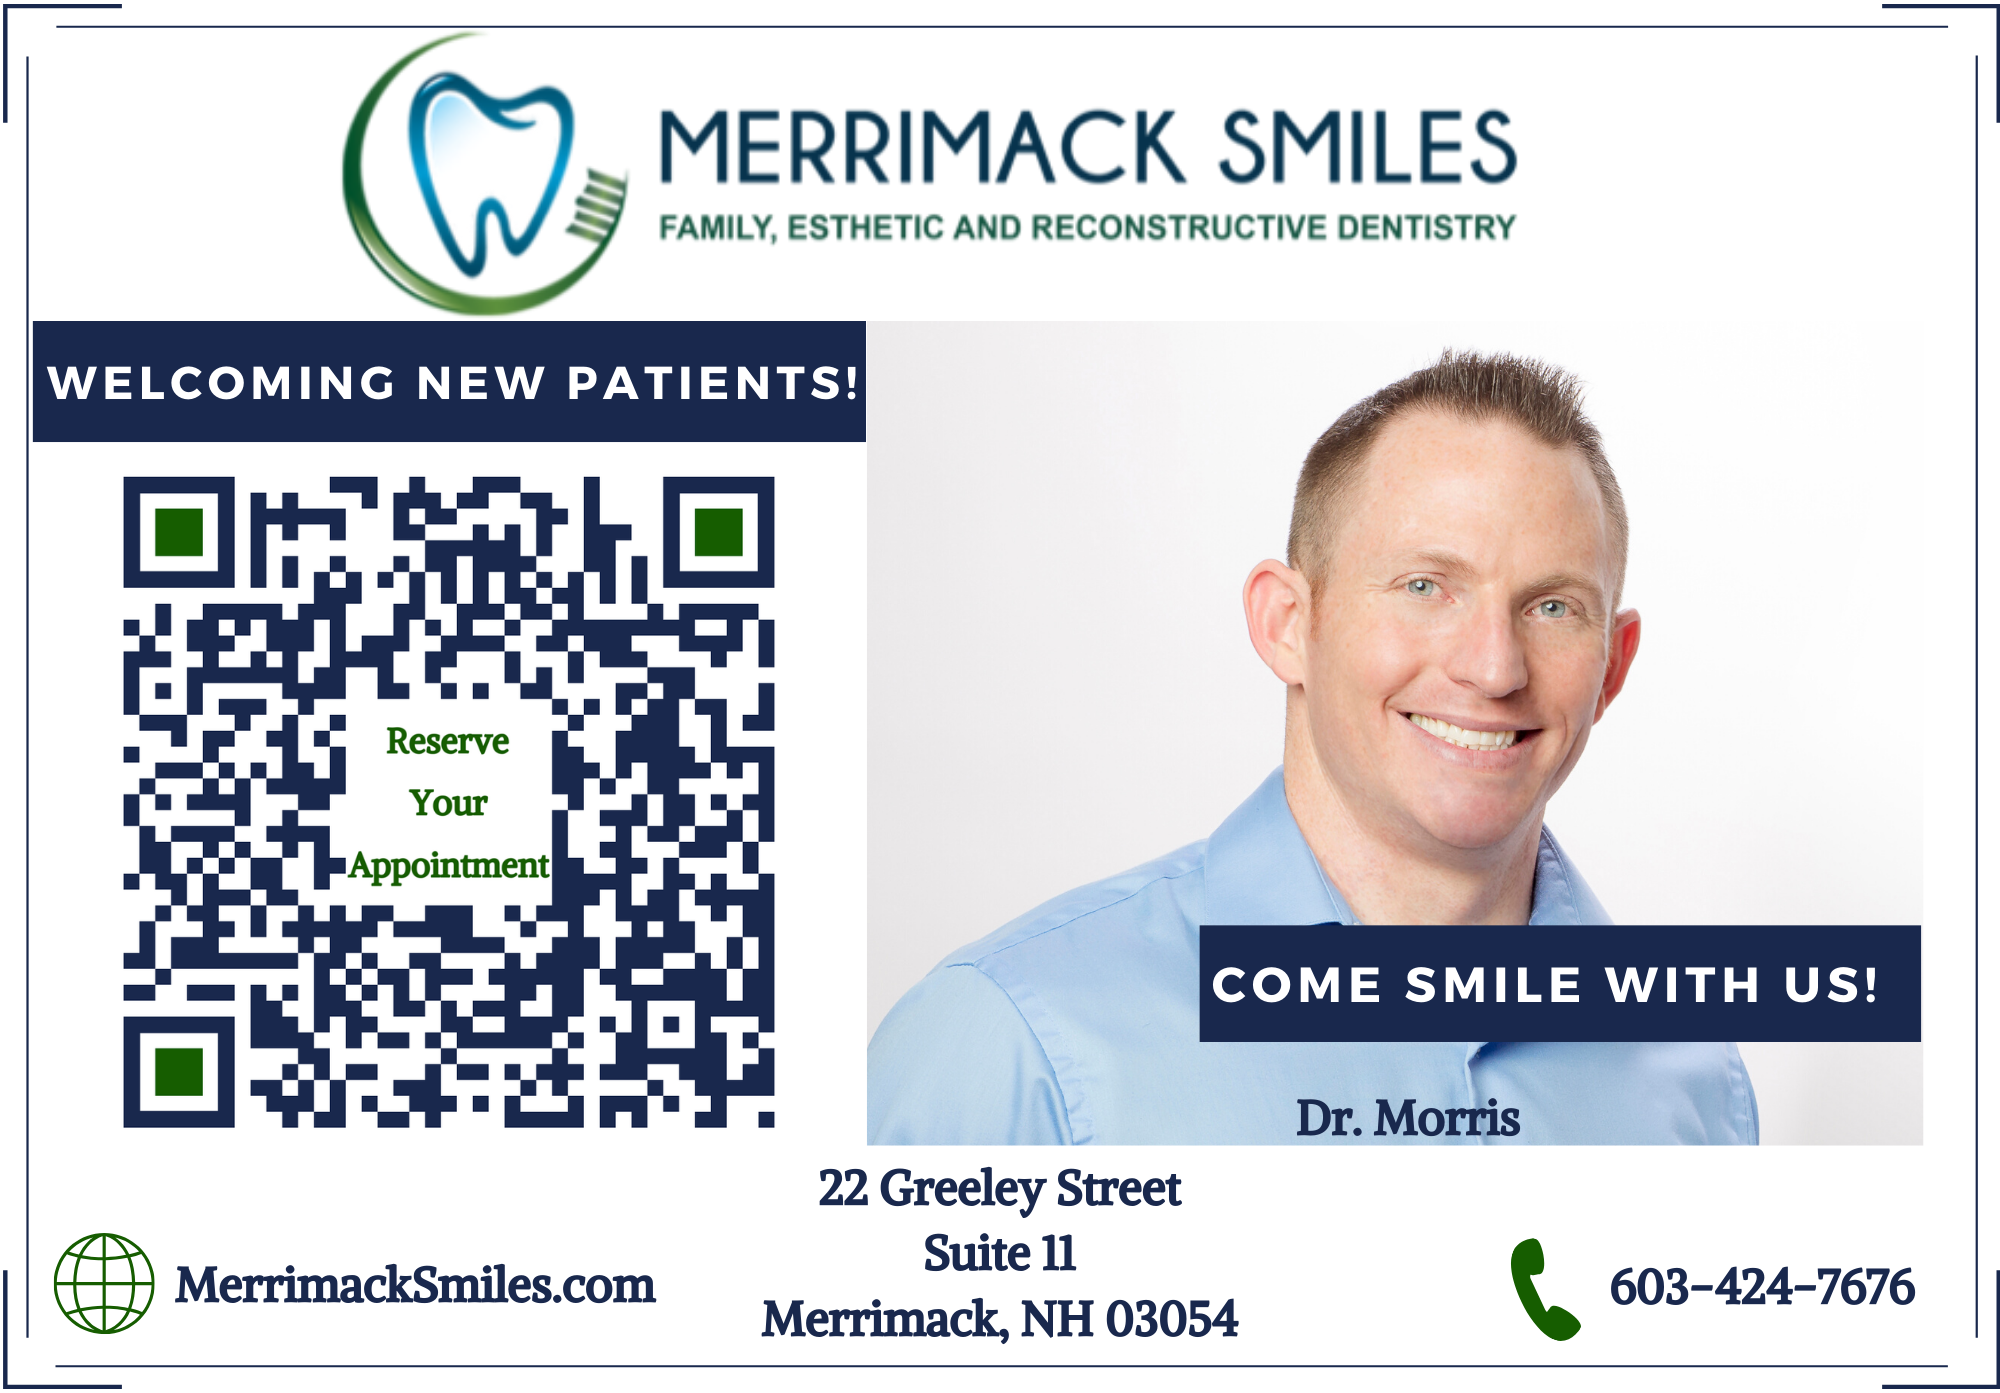 Merrimack Smiles reviews | Dentists at 22 Greeley Street - Merrimack NH